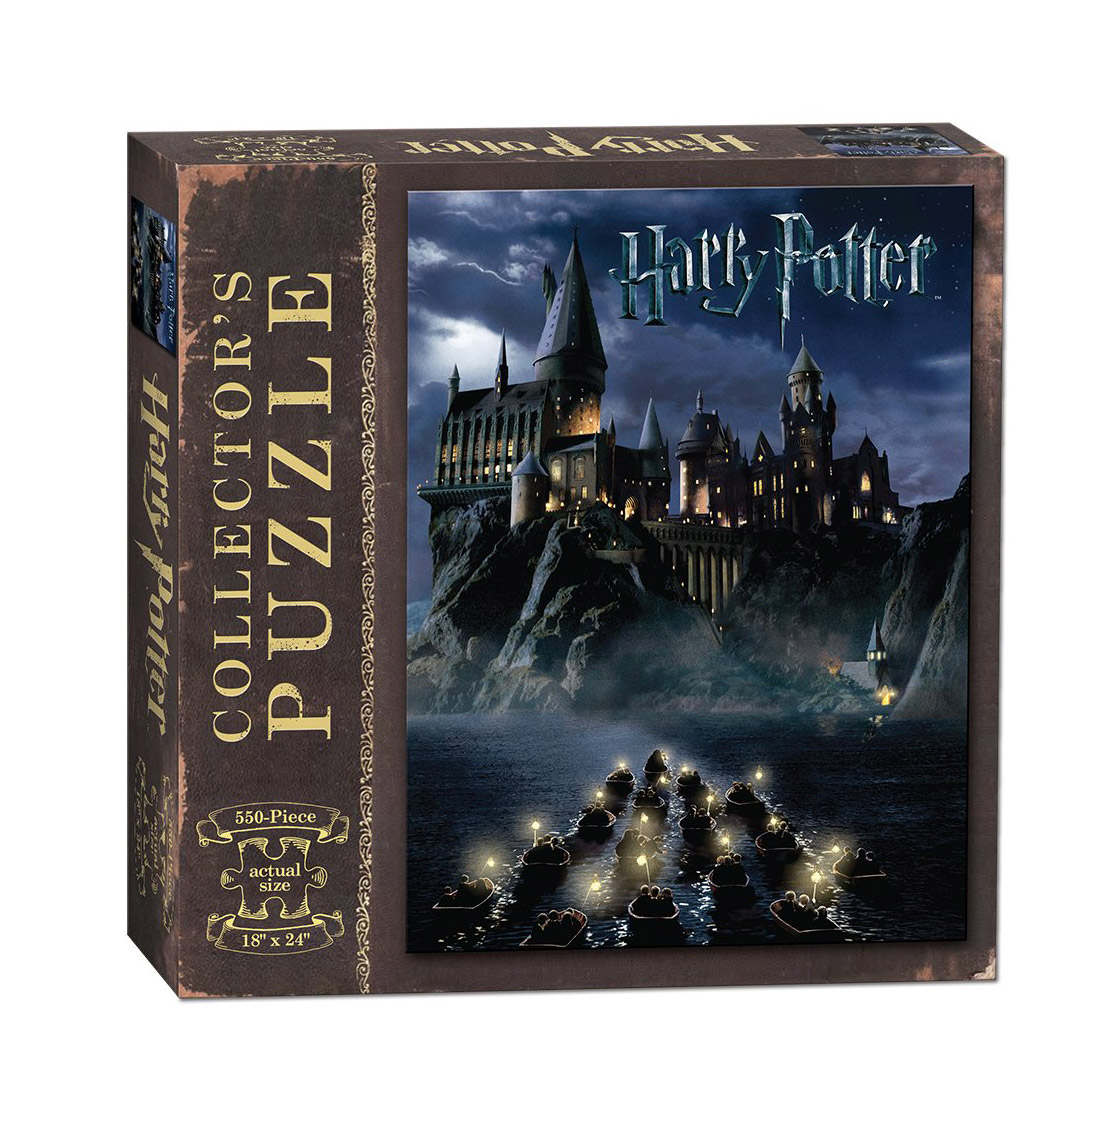 Harry Potter gifts - USAOPOLY World of Harry Potter Jigsaw Puzzle